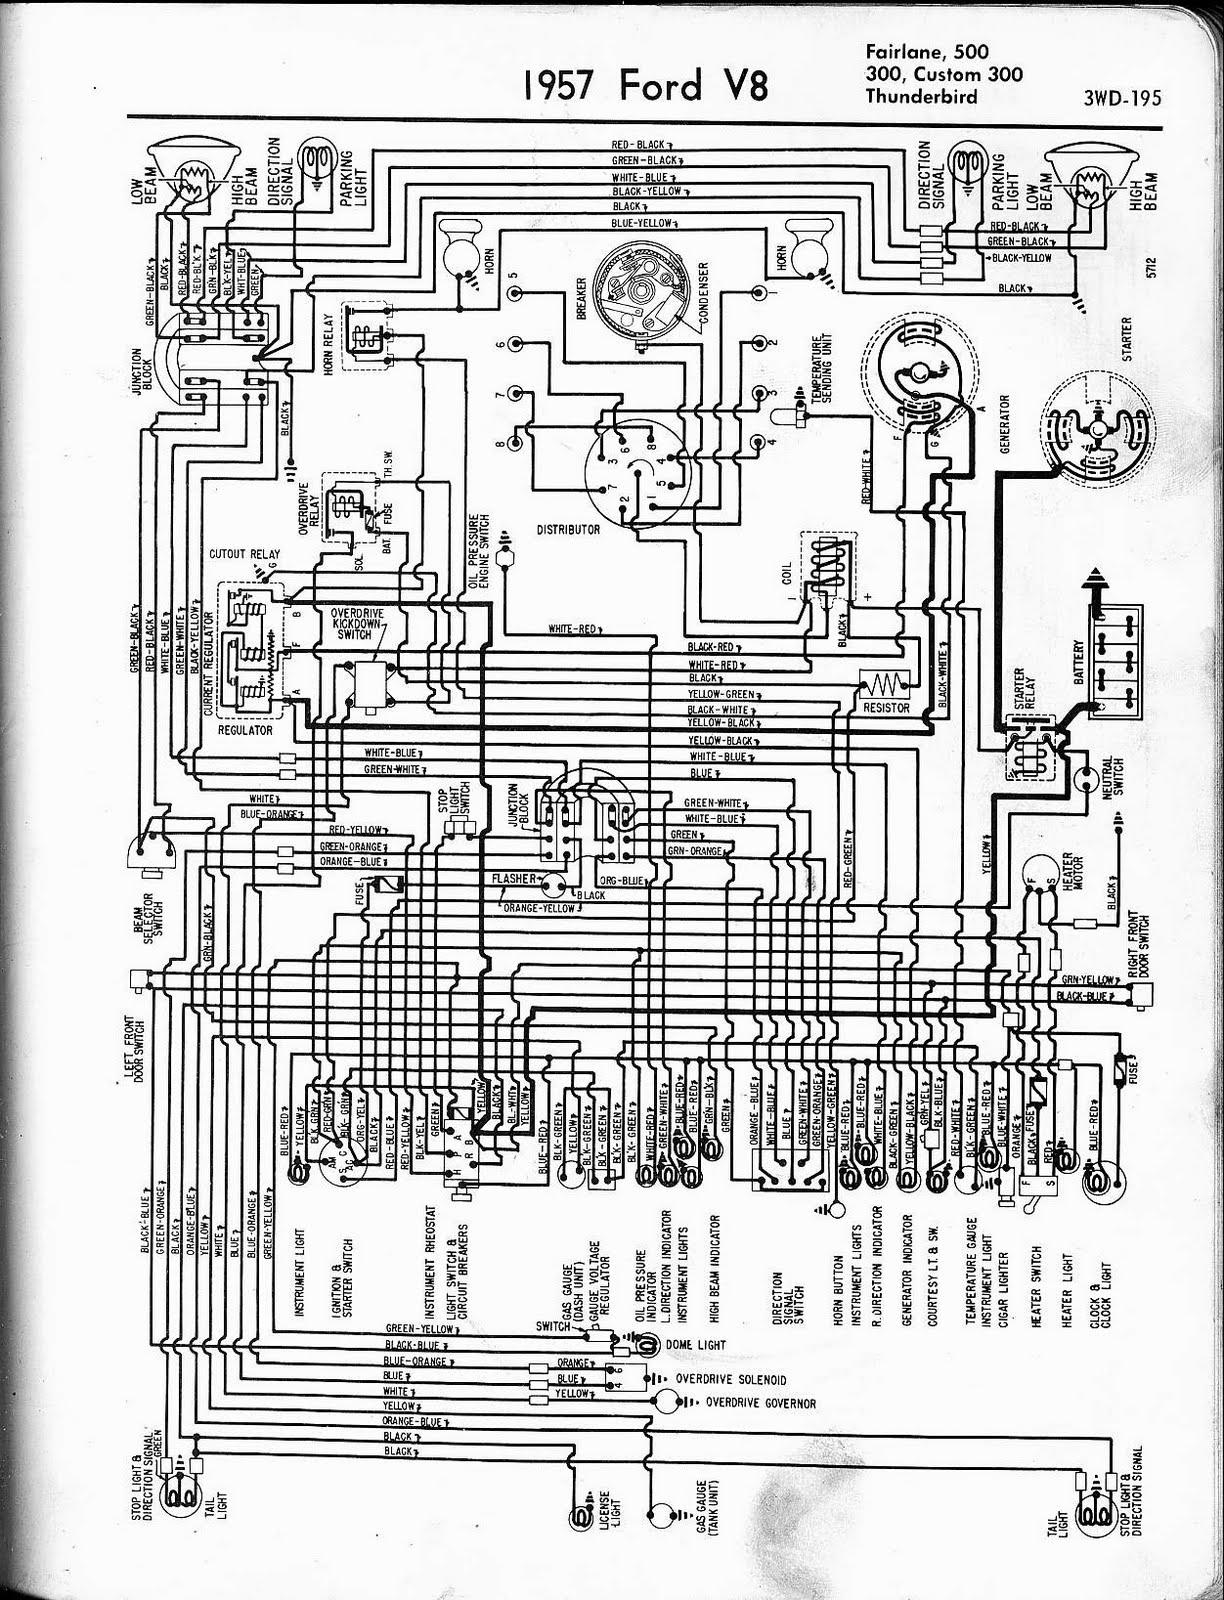 2012 Chevy Truck Fuse Box Wiring Diagram Will Be A Thing 1979 Free Auto 1957 Ford V8 Fairlane Custom300 1980